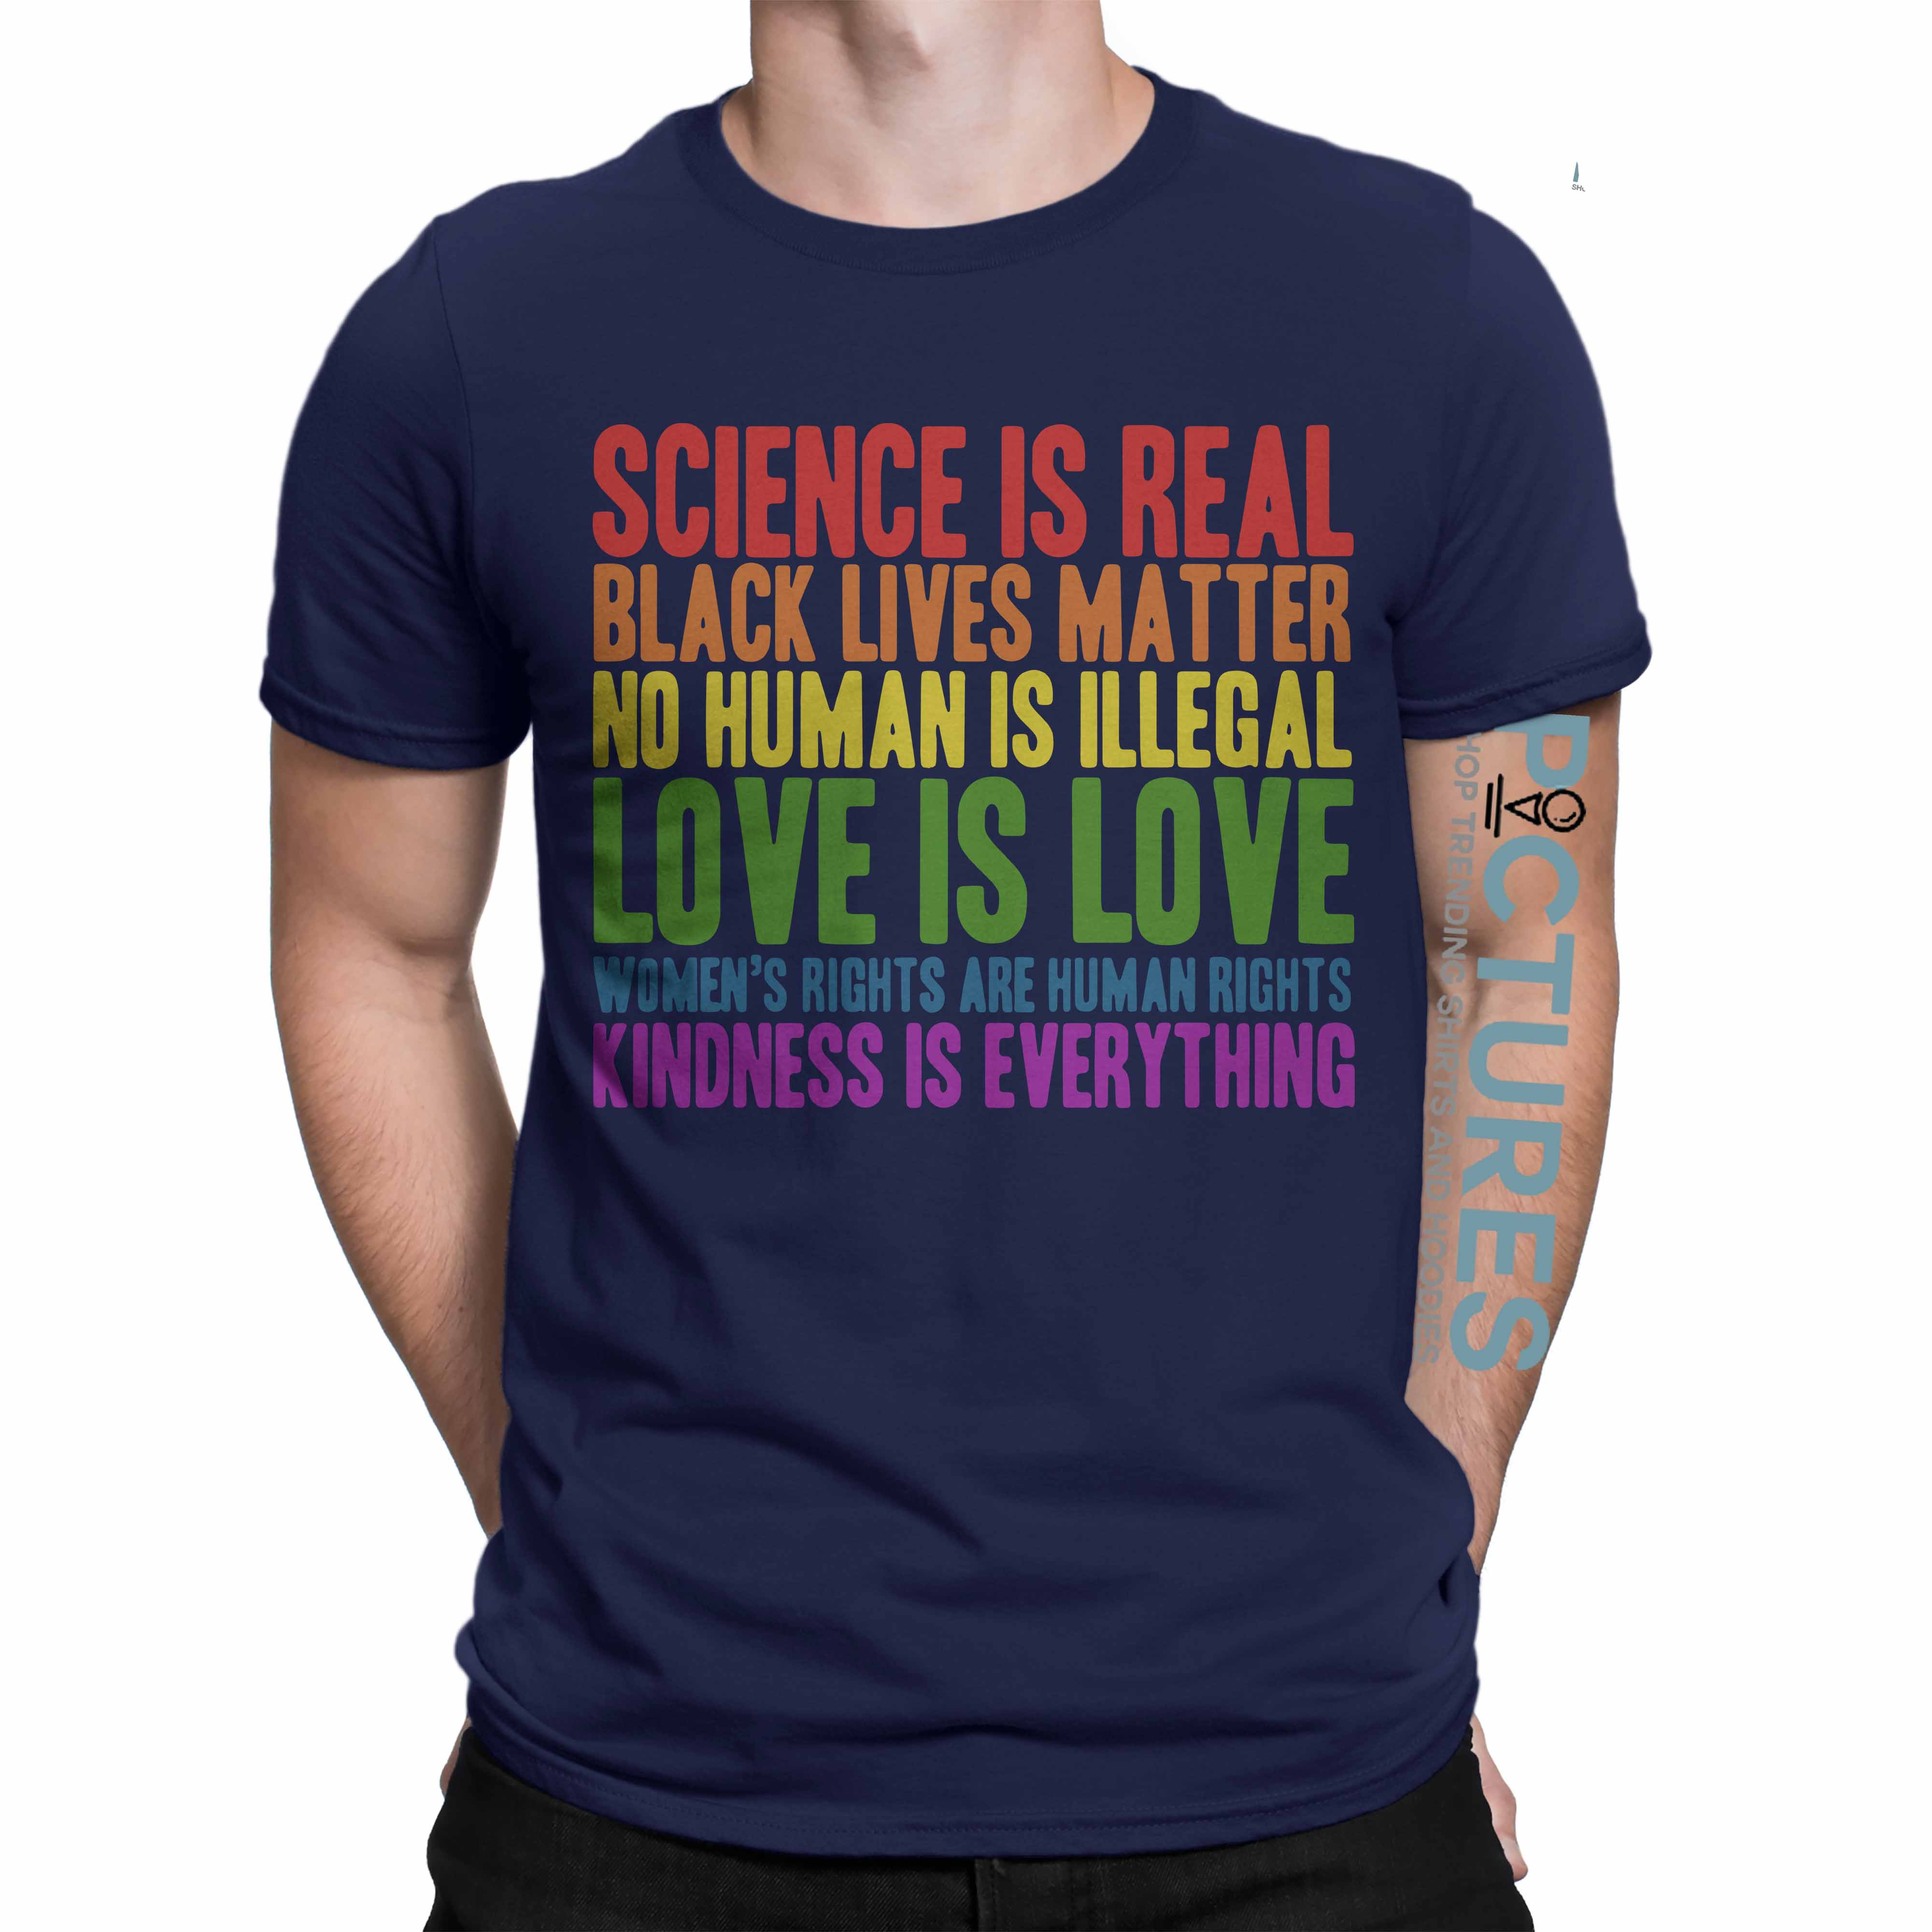 Human Right and World Truths shirt